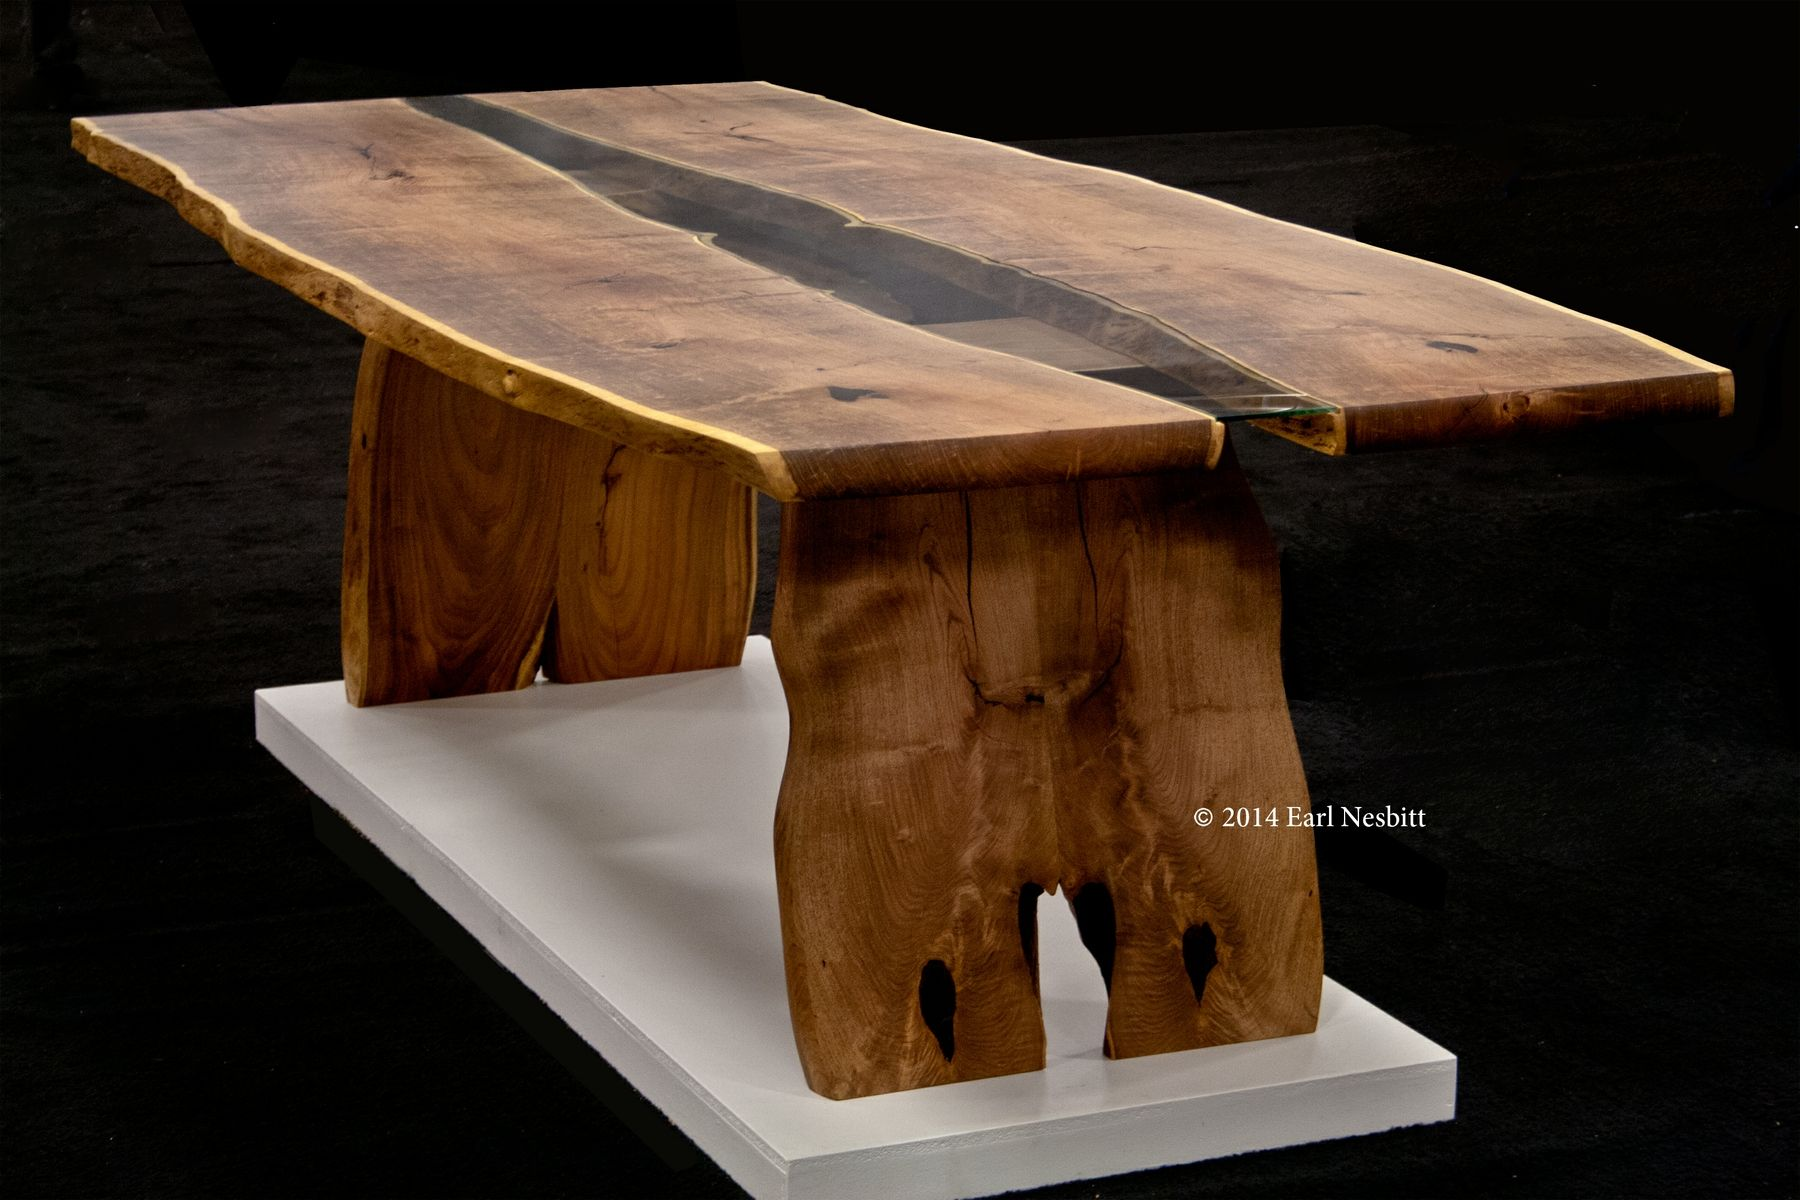 Hand Crafted Dining Table Live Edge Slab Table With Inset Glass By Earl Nesbitt Fine Furniture